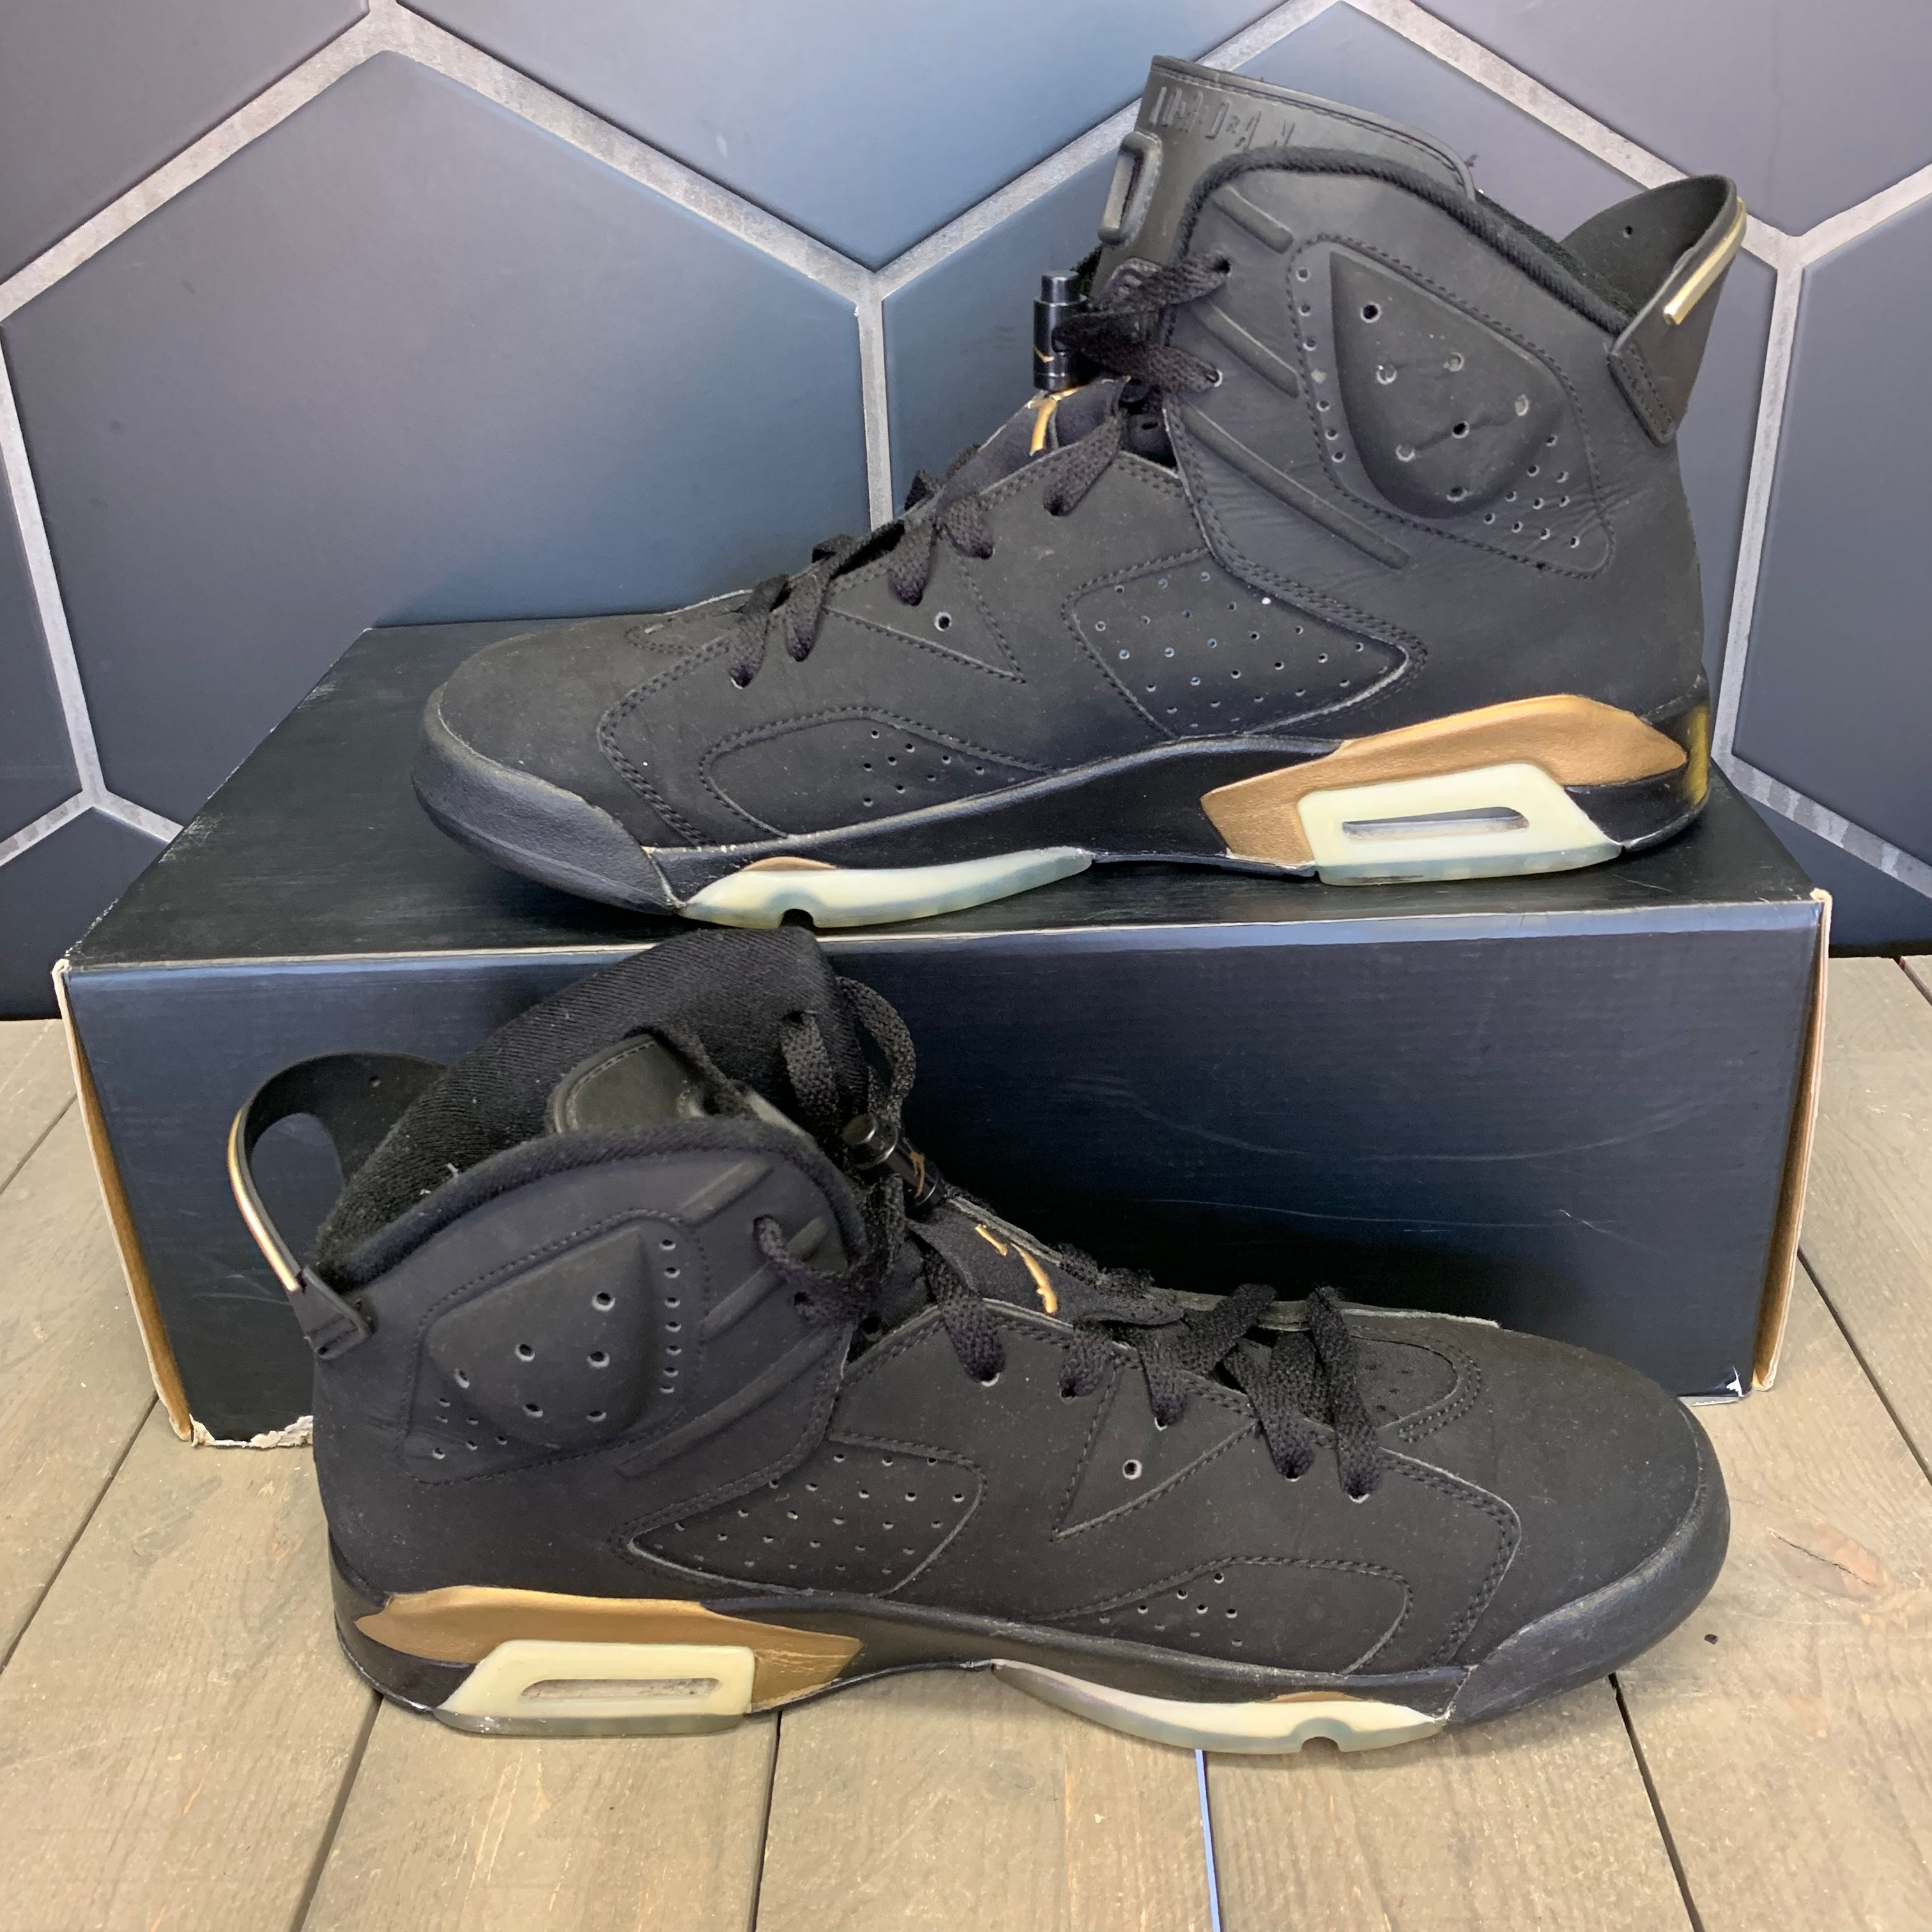 Used W/ Missing Lid! Air Jordan 6 DMP Gold Size 11.5